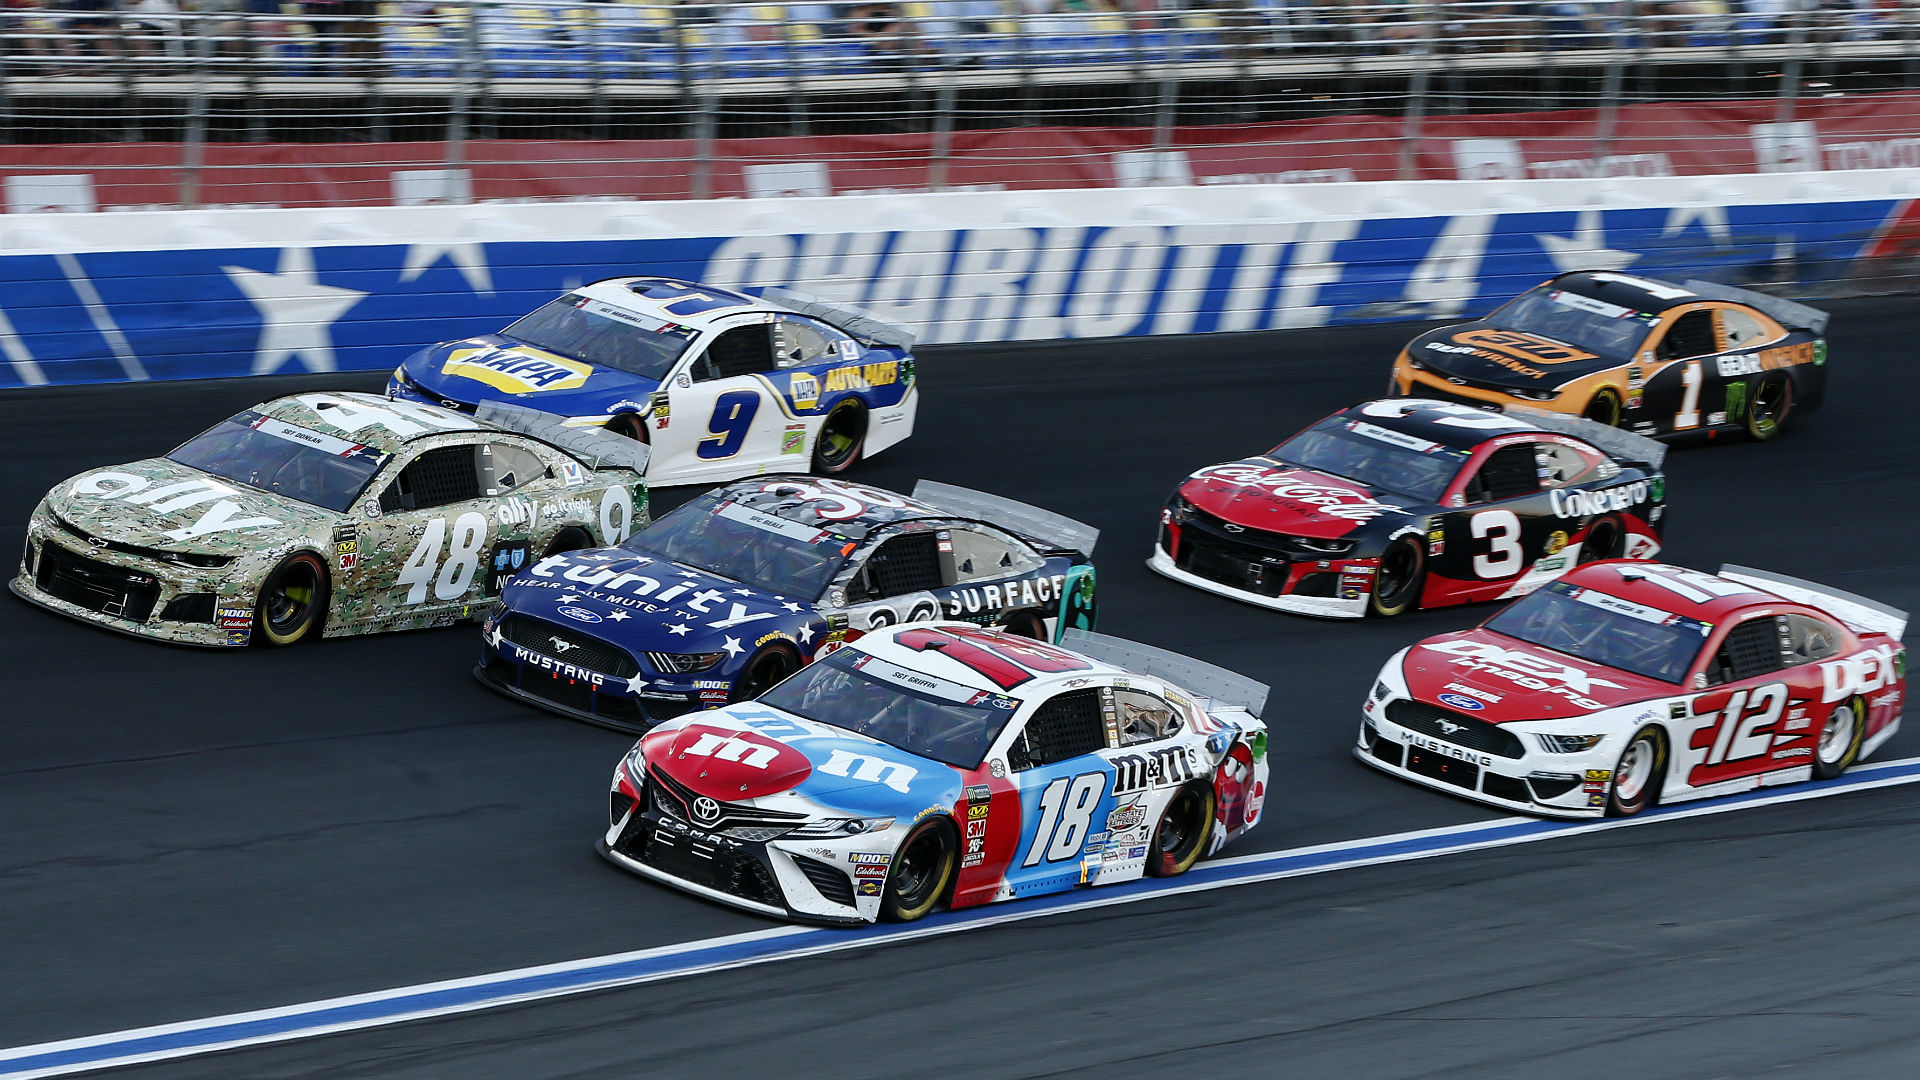 Odds for NASCAR race at Charlotte: Expert picks & favorites to win Wednesday's Alsco Uniforms 500